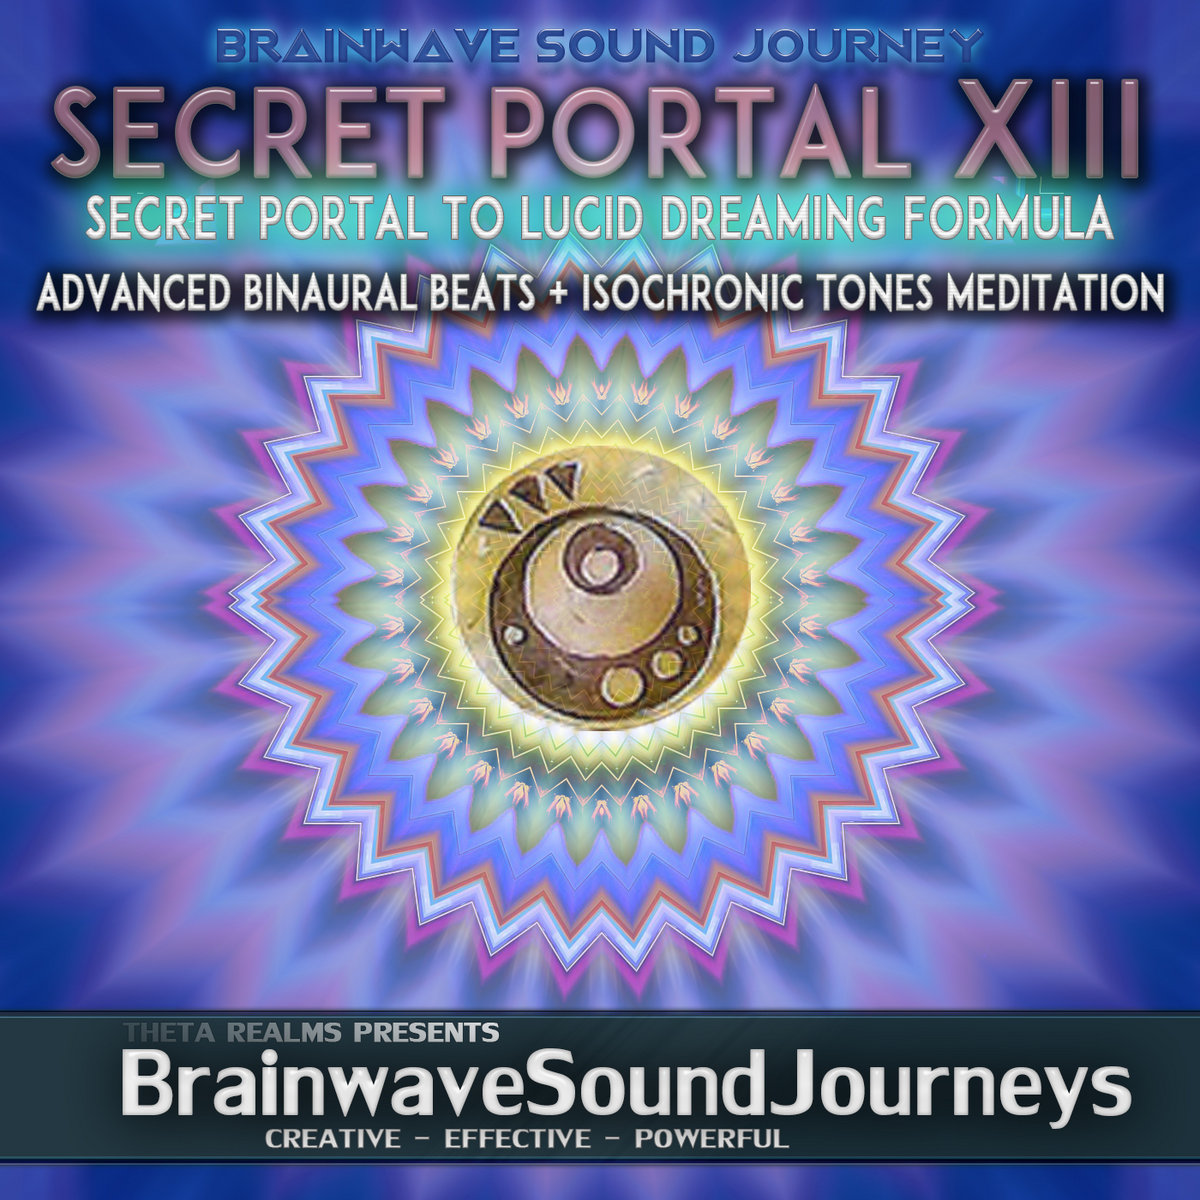 BE READY🔹INSTANT LUCID DREAMING PORTAL XIII MEDITATION